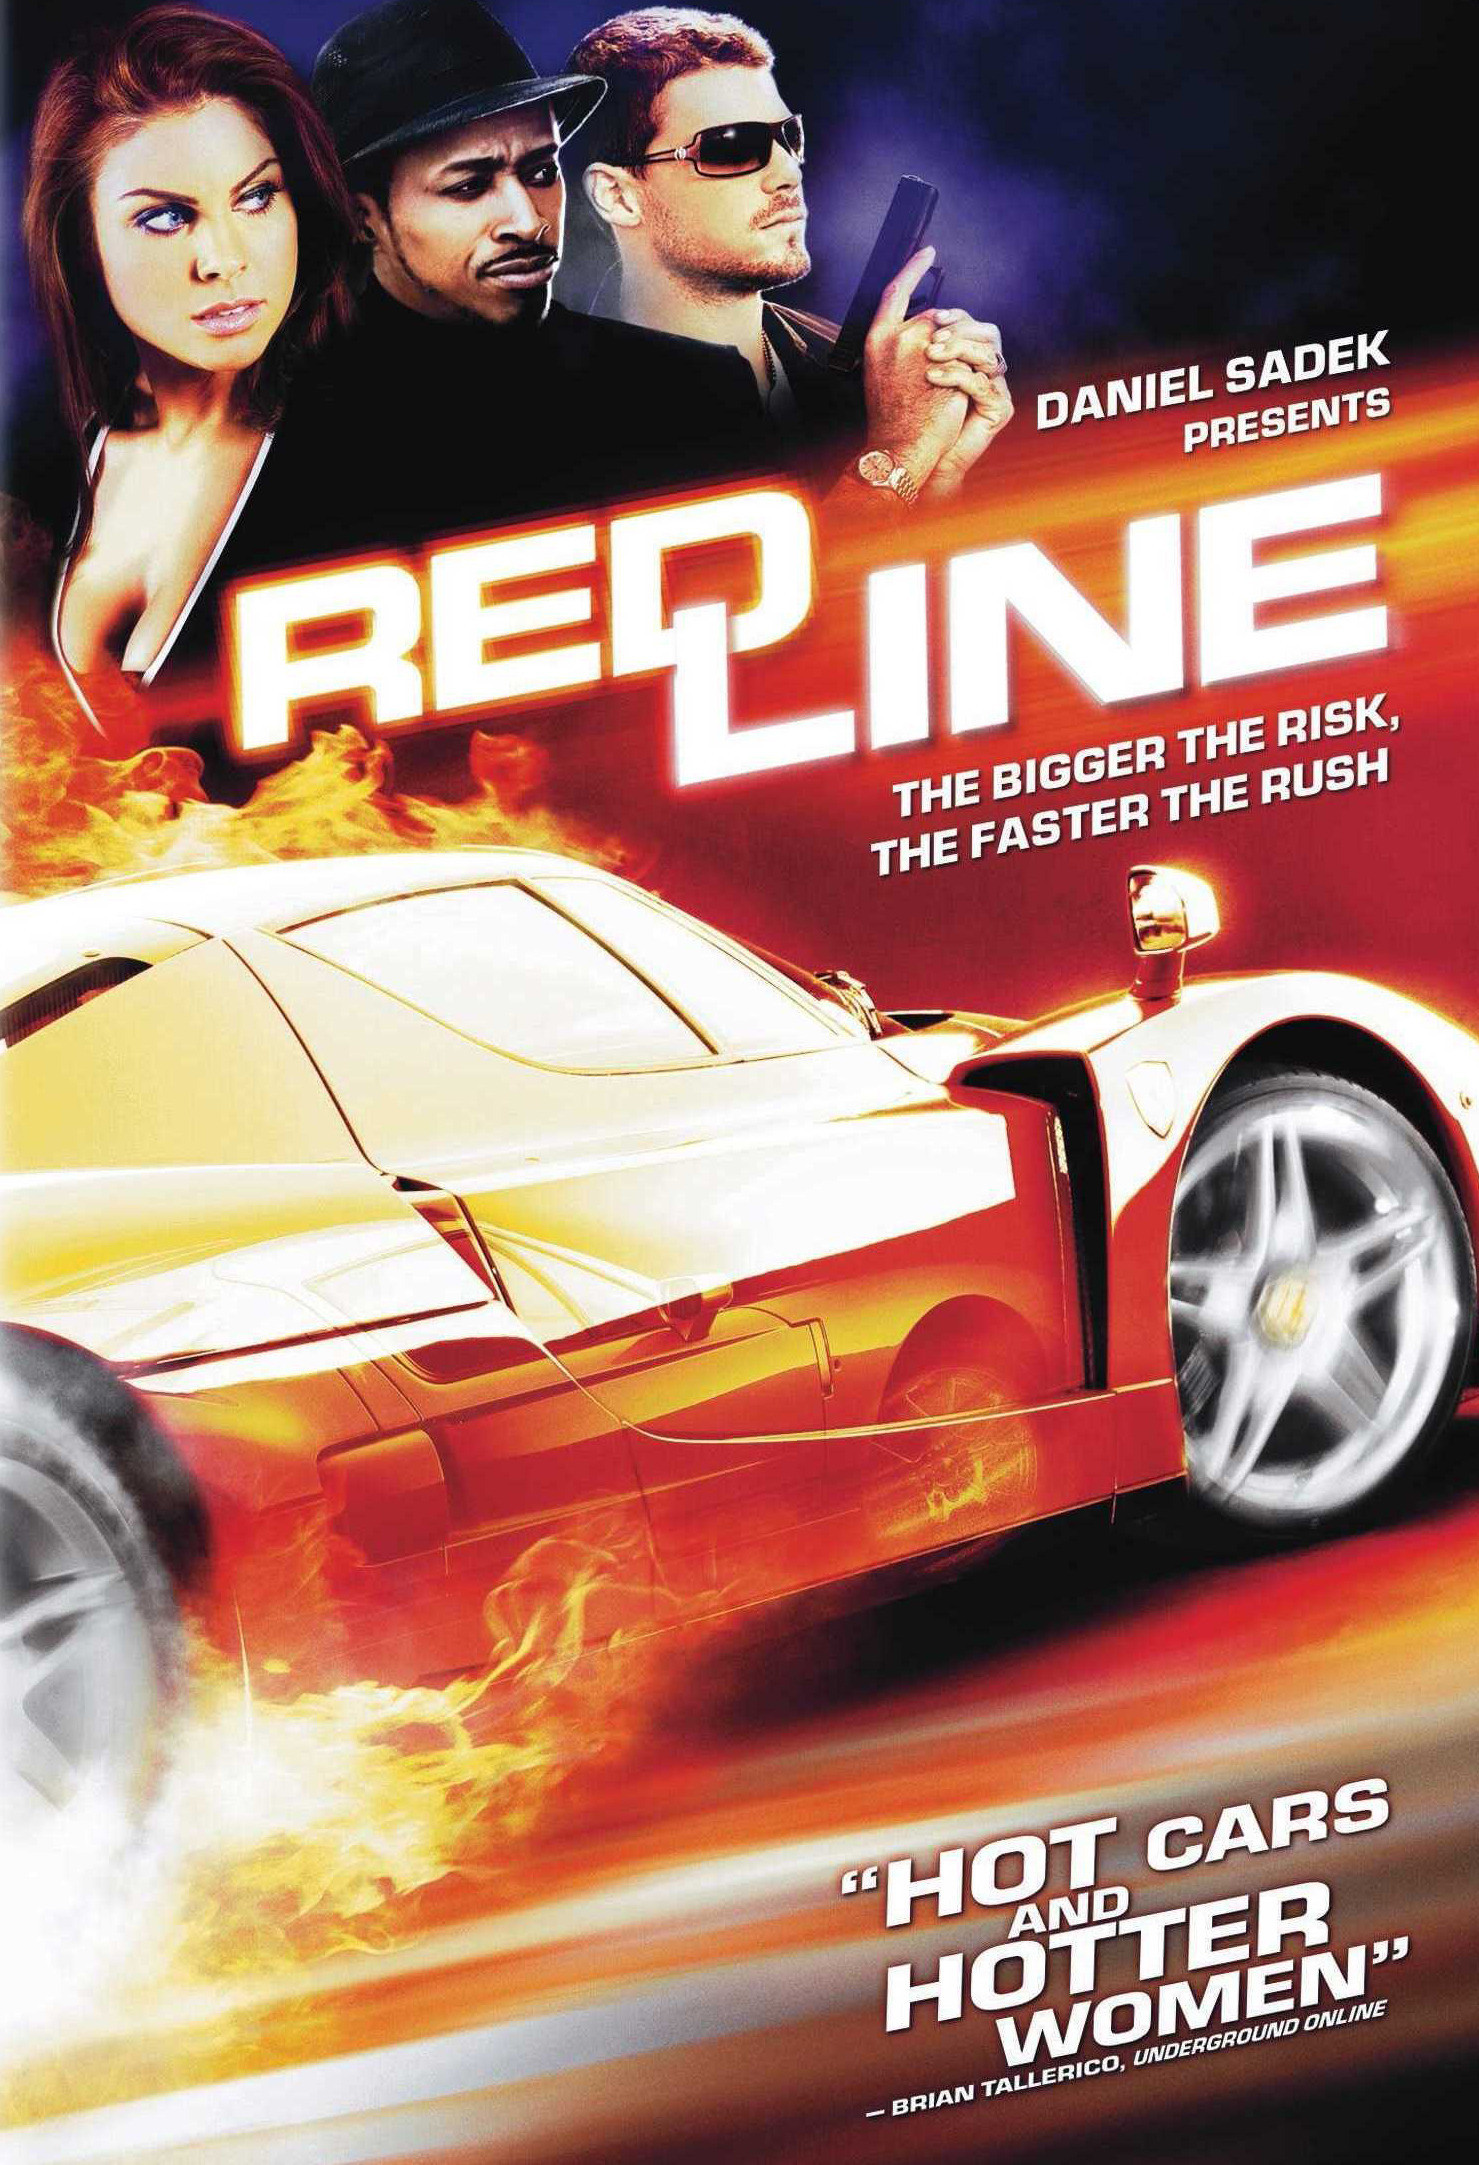 Download yify movies redline (2007) 720p mp4[1. 13g] in kewei. Tw.